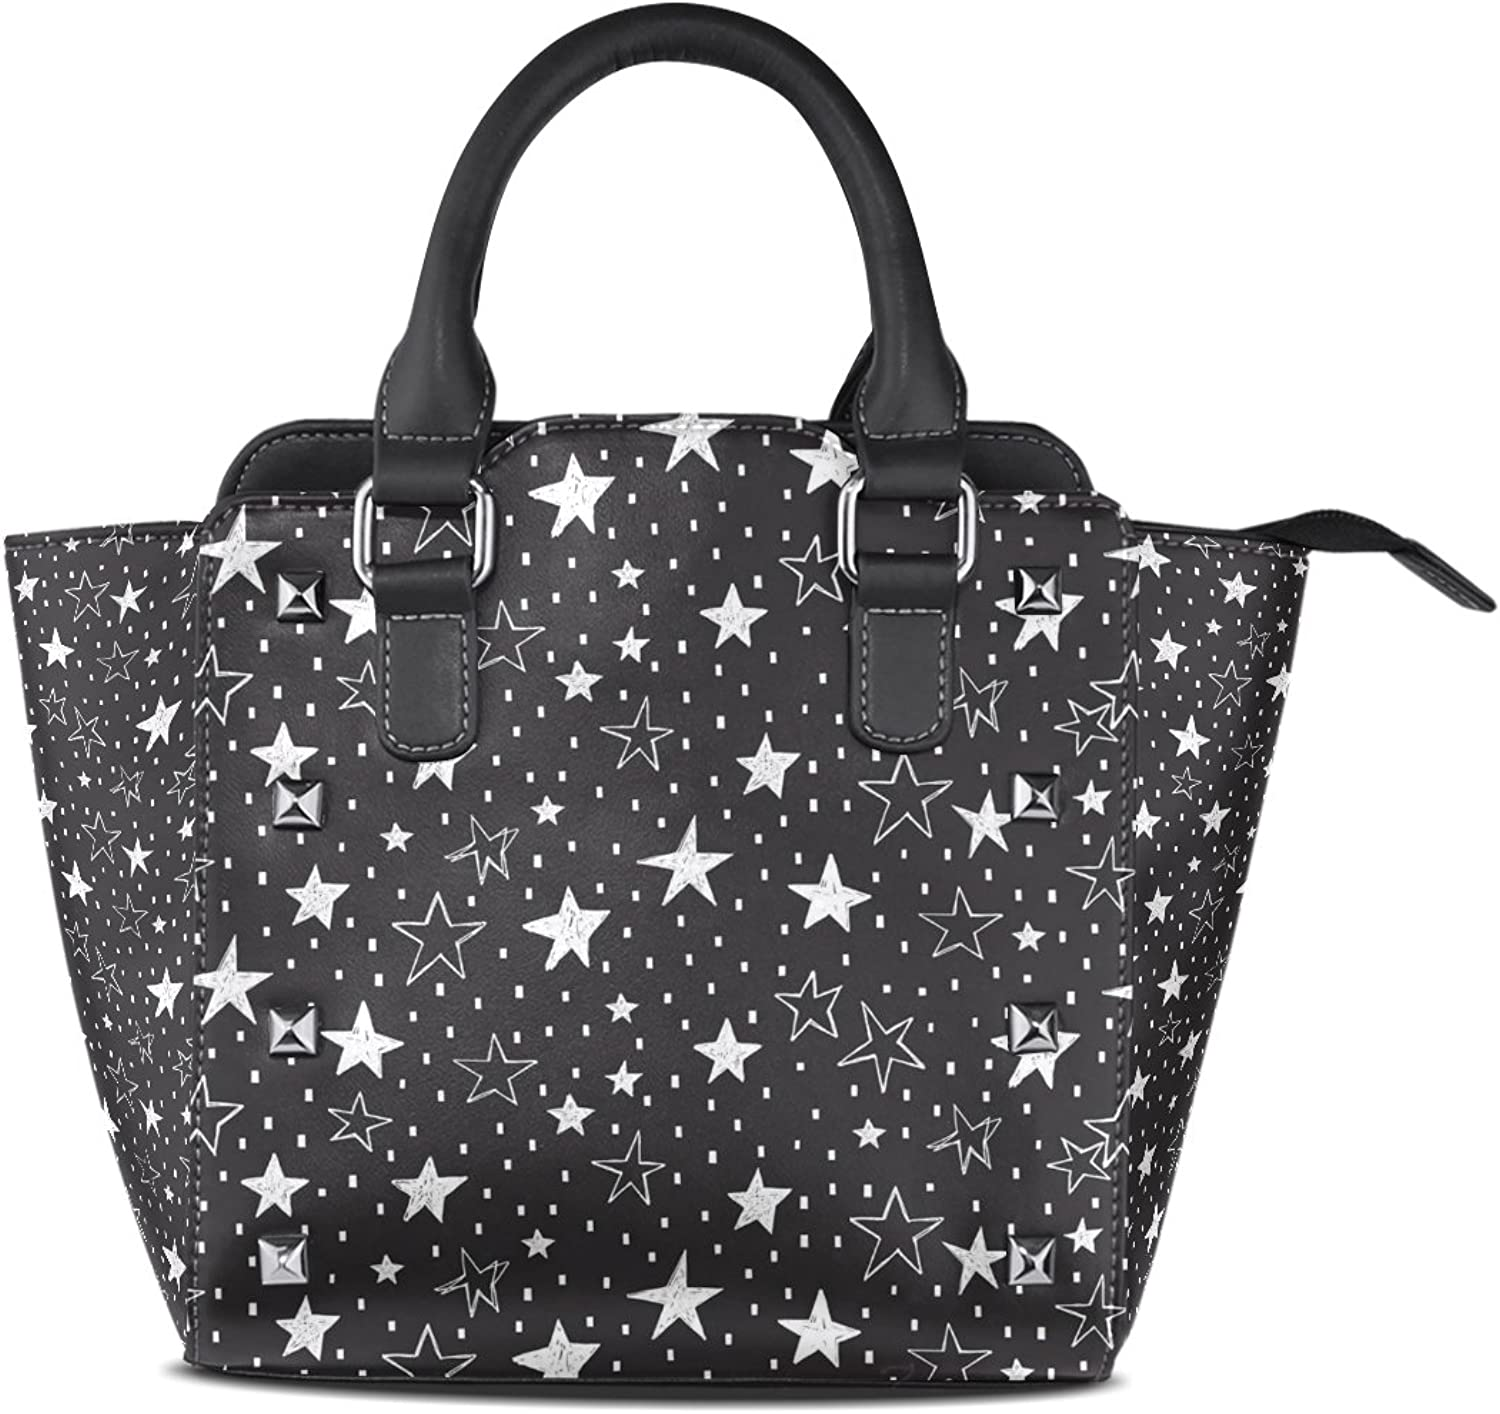 Sunlome Stars Print Women's Leather Tote Shoulder Bags Handbags